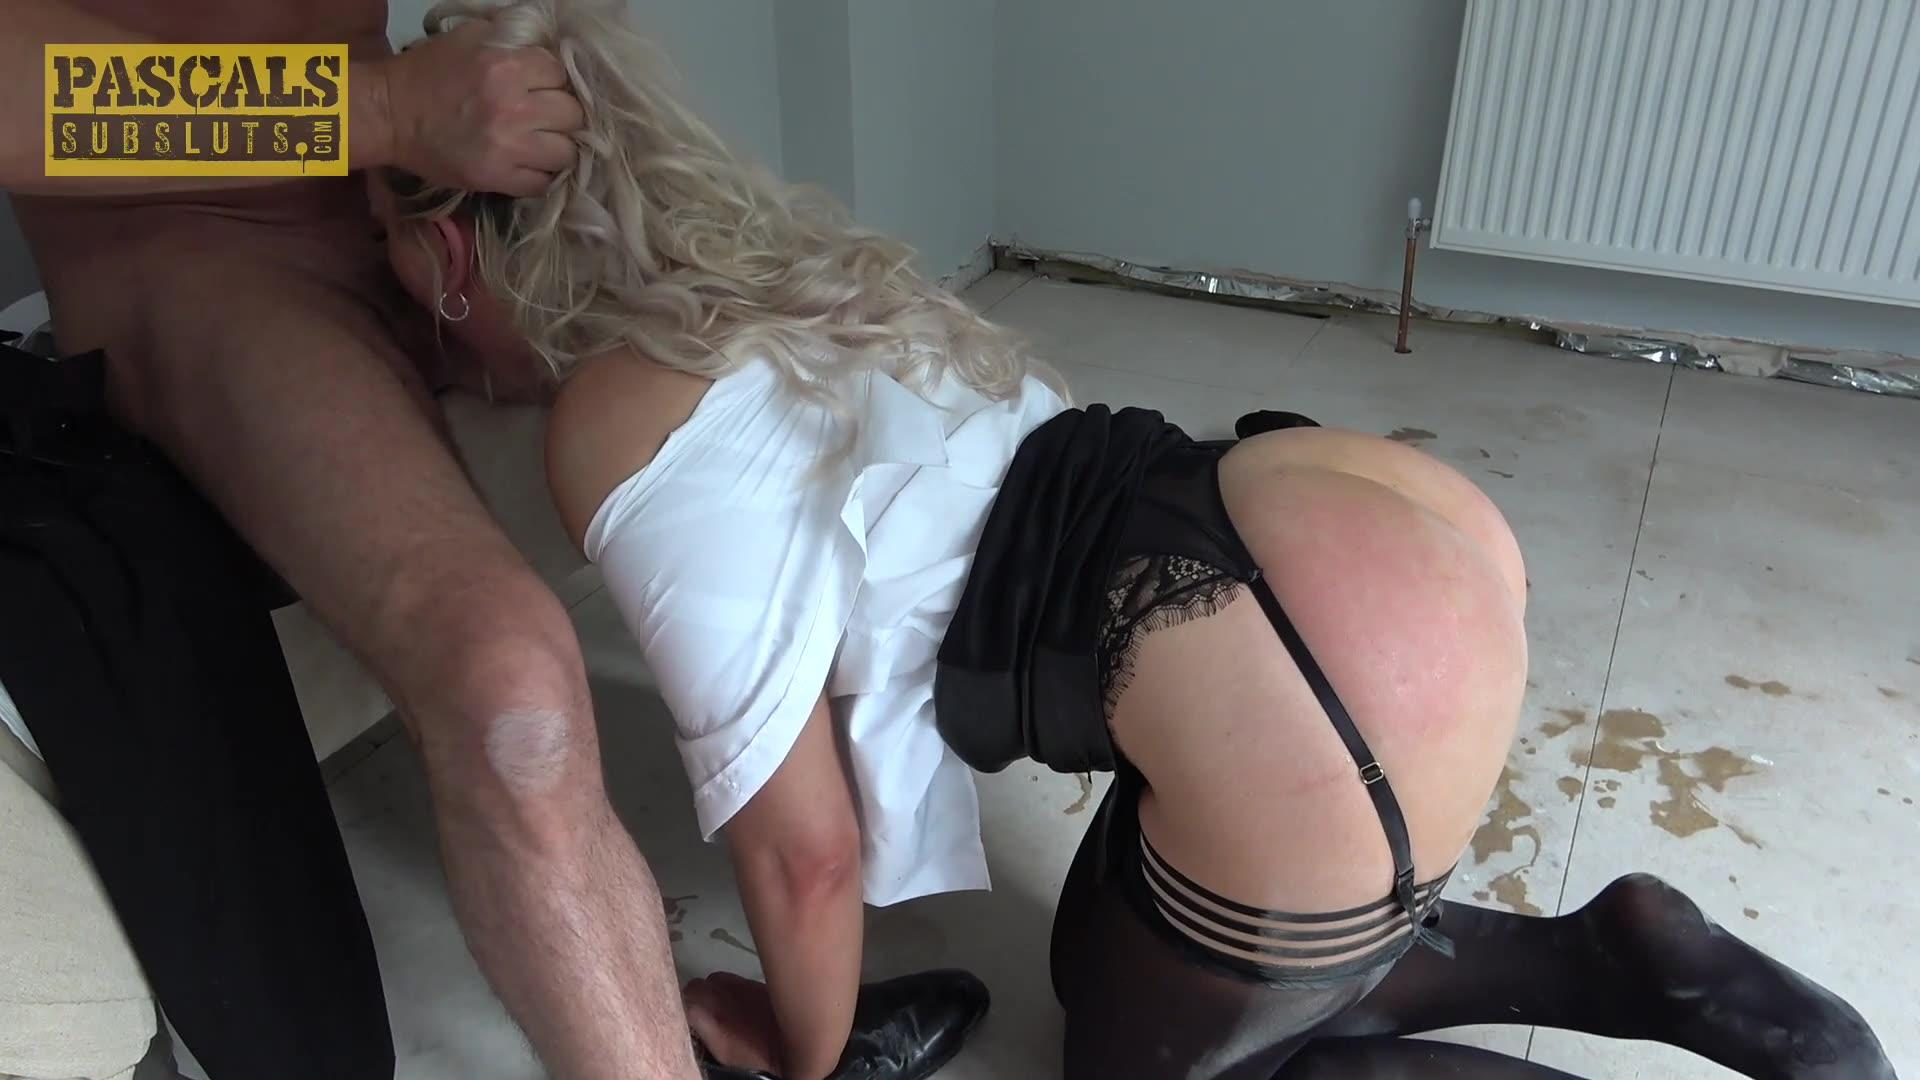 PascalsSubSluts 20 10 23 Gina Varney Another Slut Satisfied XXX 1080p MP4-XXX